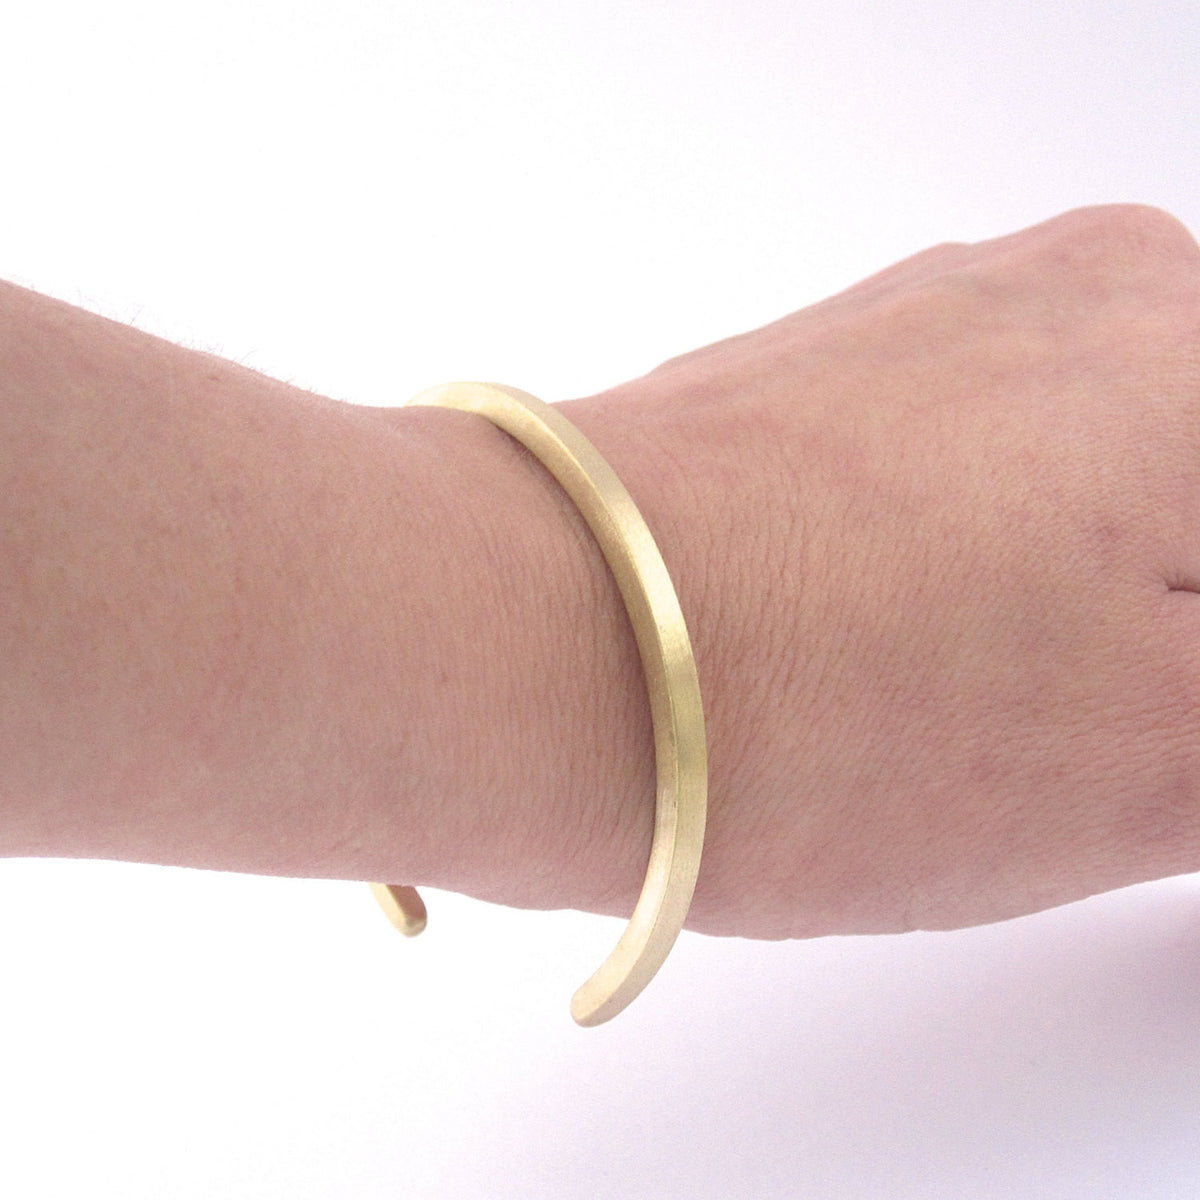 Contemporary Stylish Hand-Made Thick Square Bangle Cuff Bracelet - 0174 - Virginia Wynne Designs